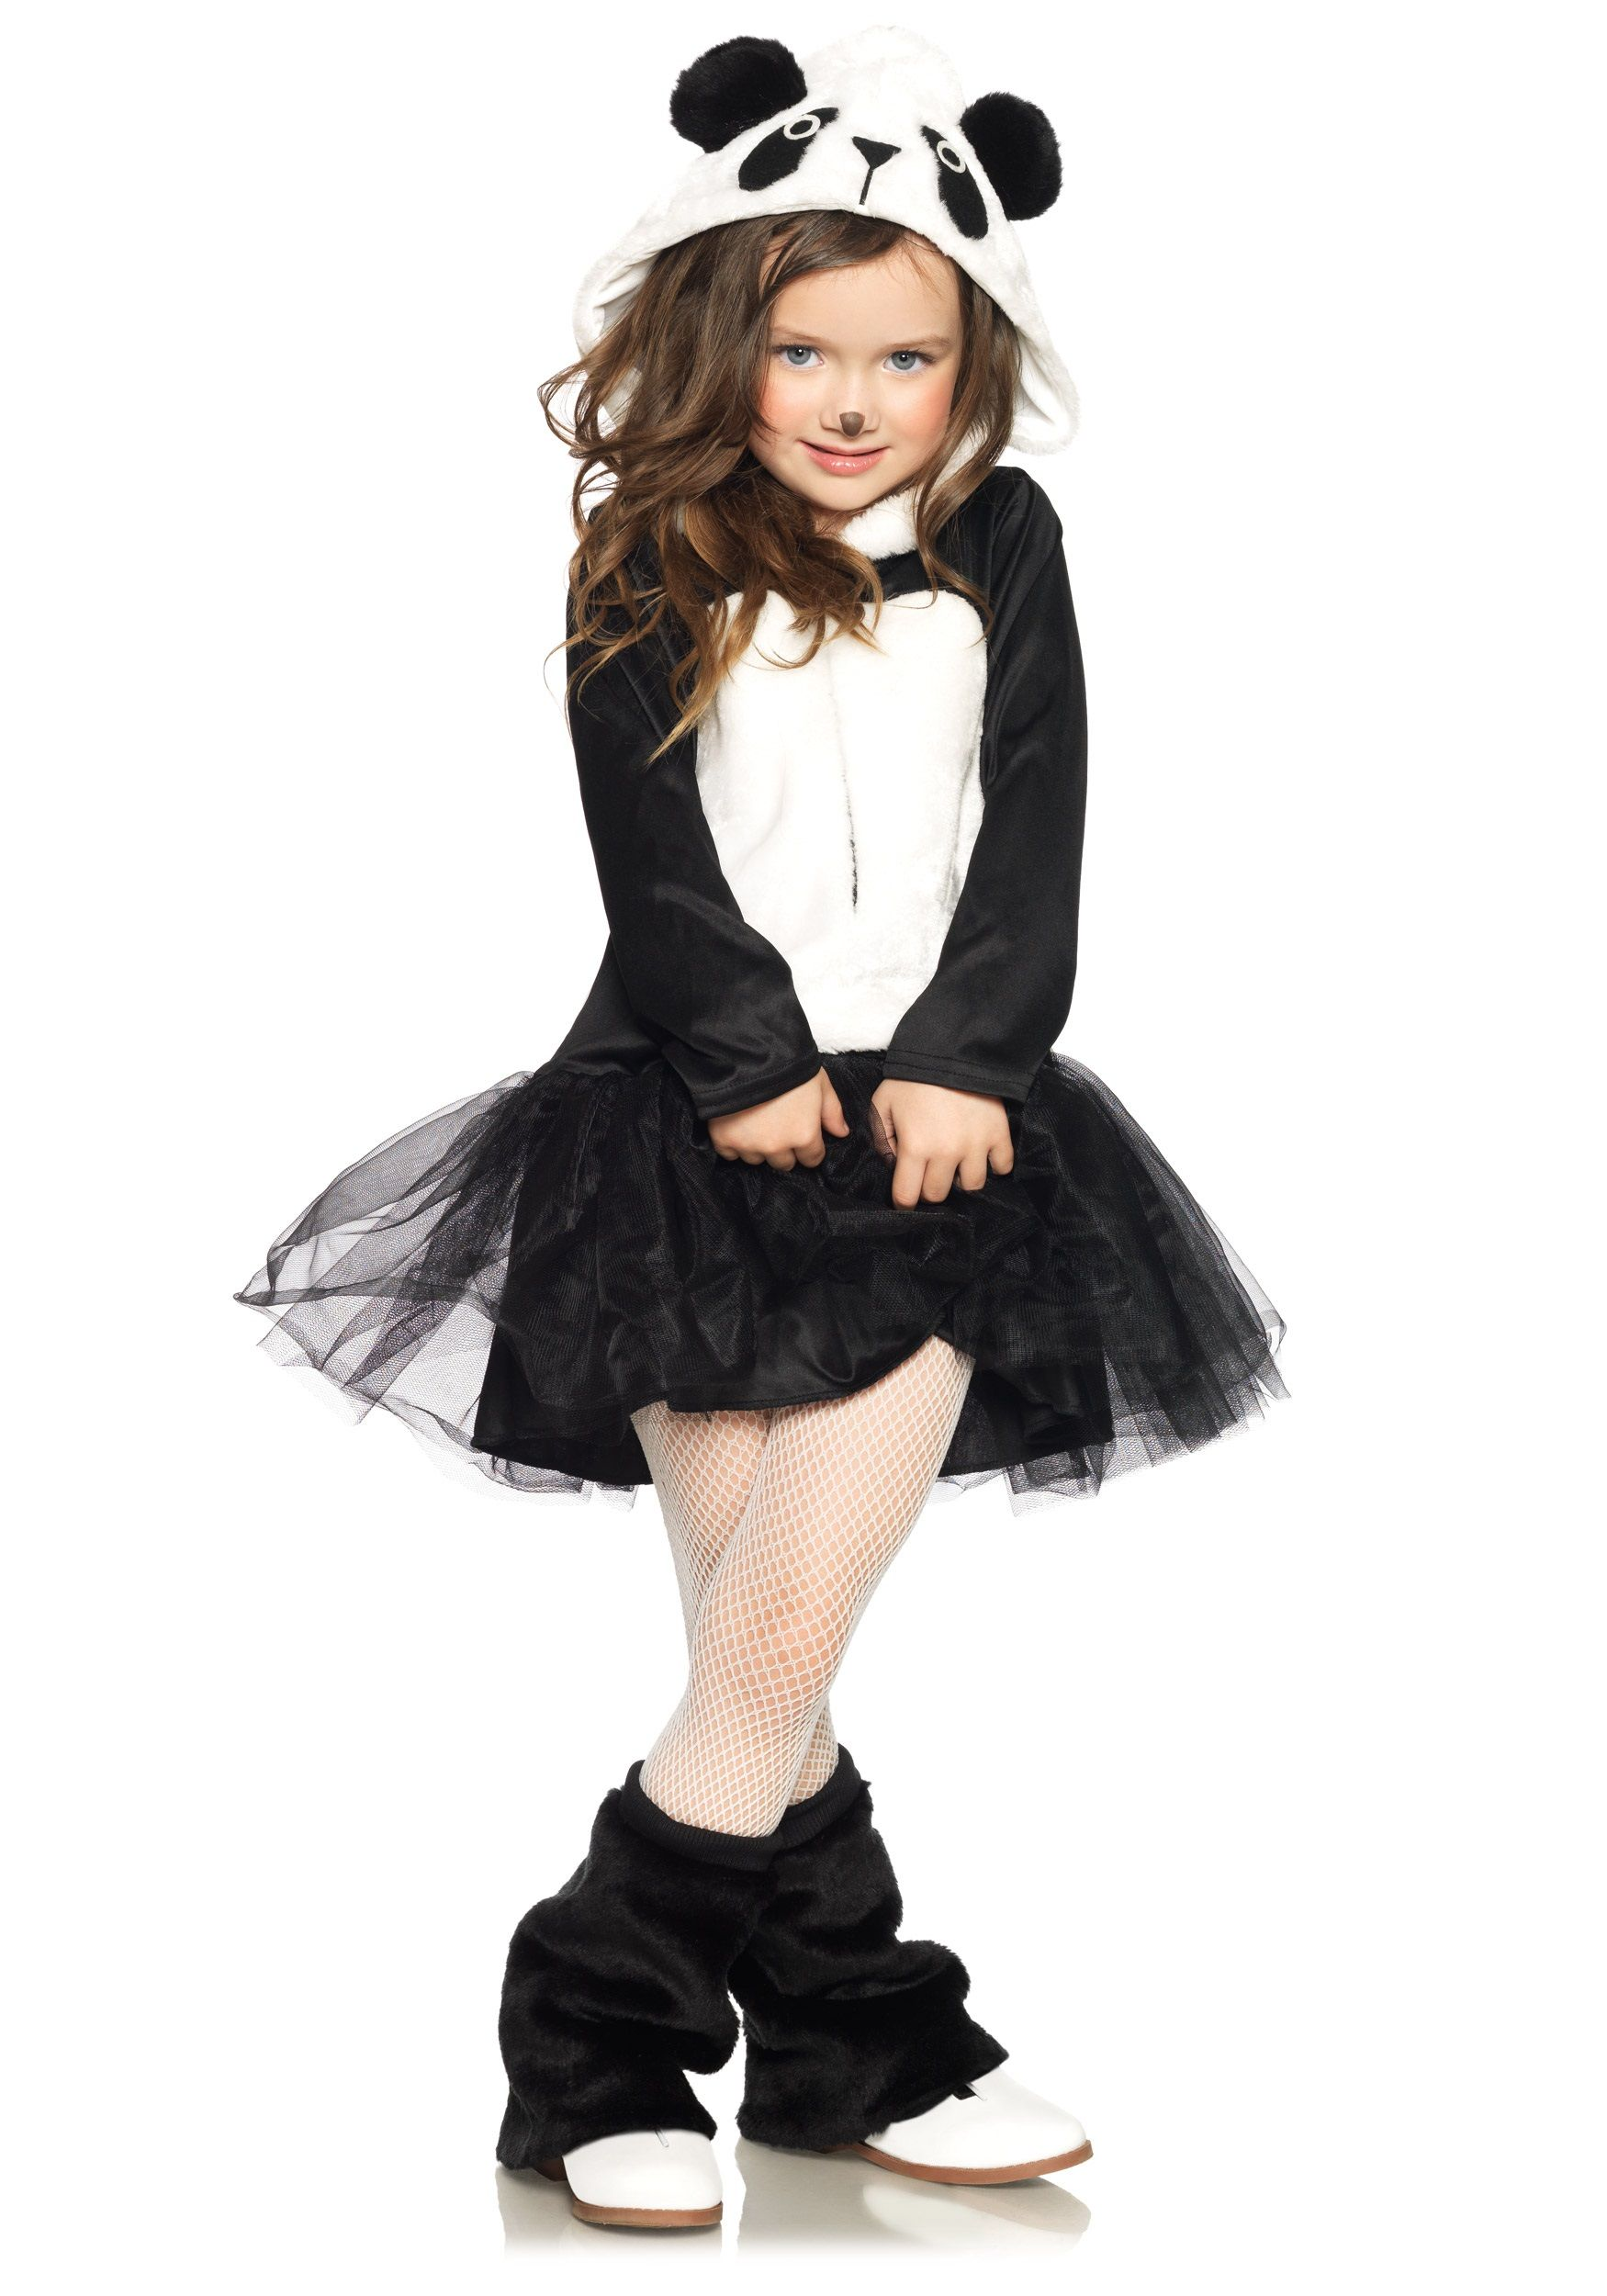 panda costumes for tweens cute girl halloween costume ideas